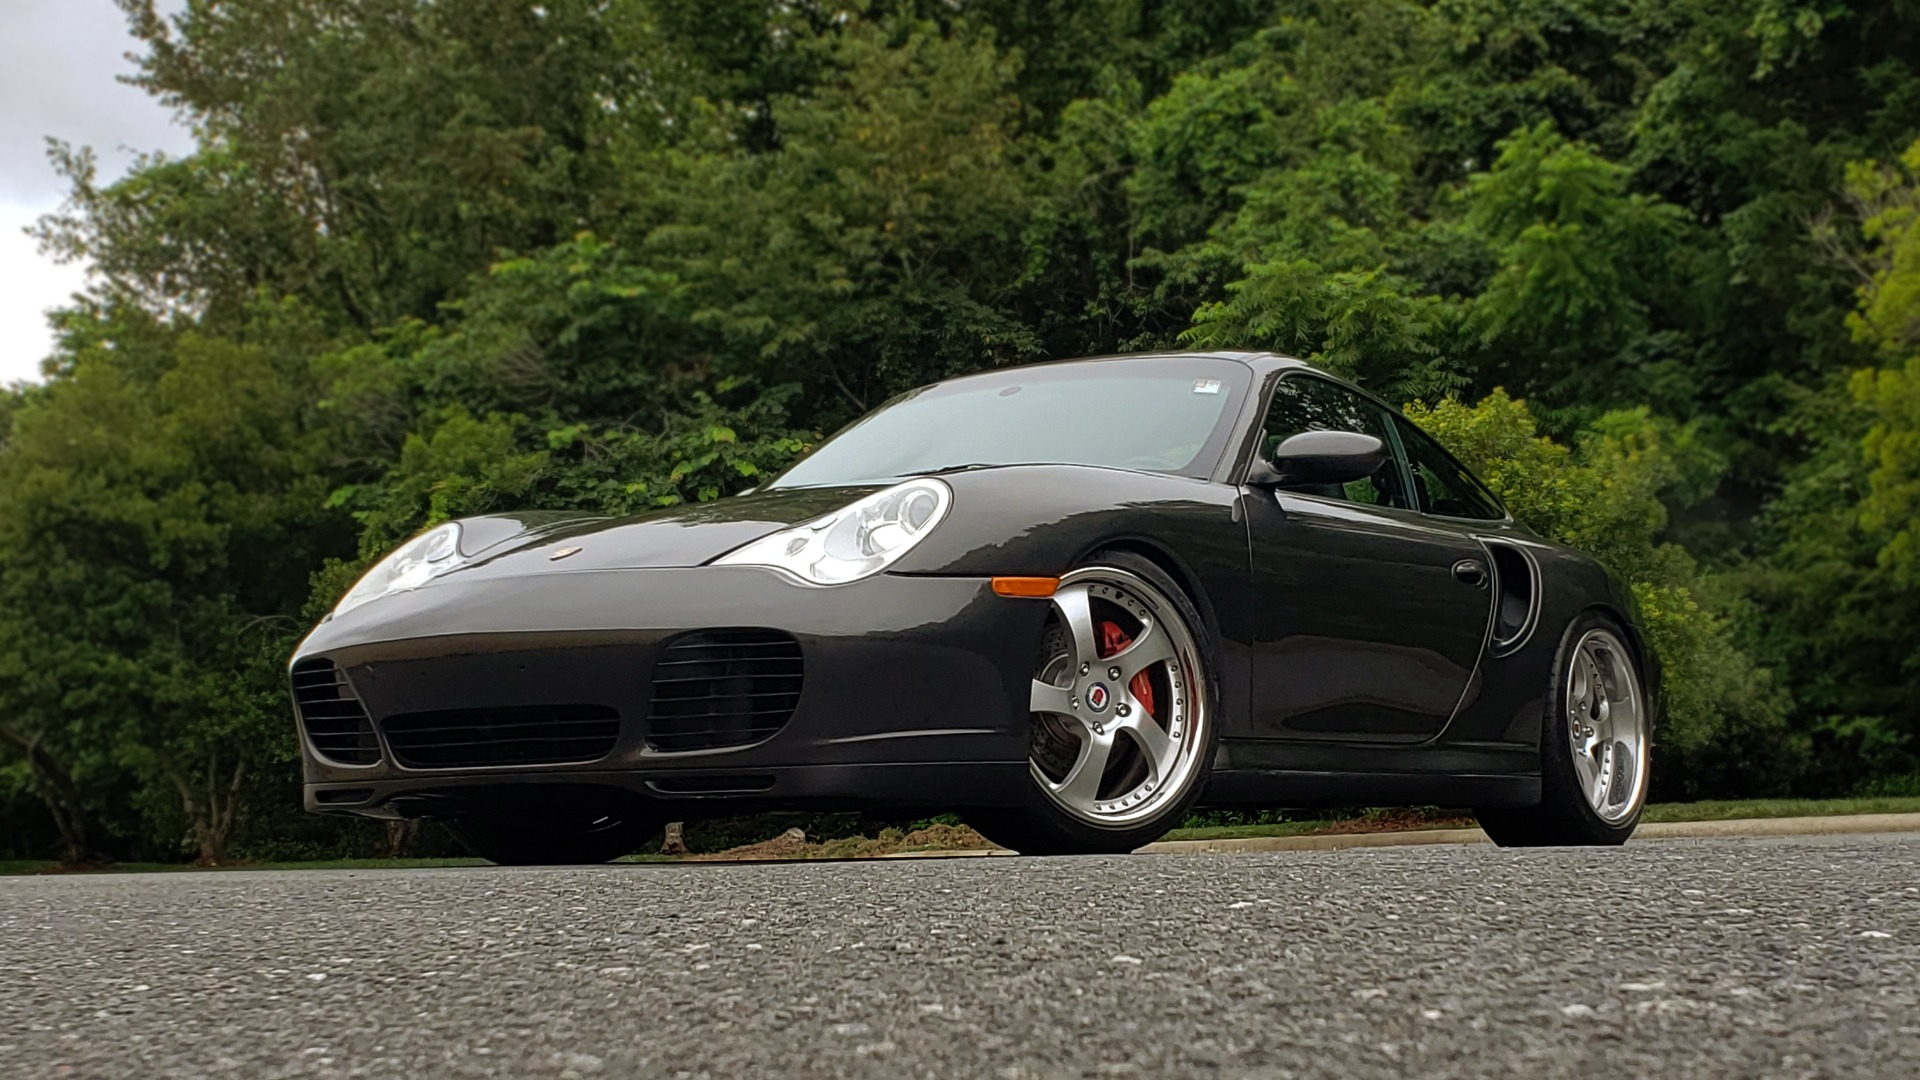 Used 2002 Porsche 911 CARRERA TURBO COUPE / 6-SPD MANUAL / PERF UPGRADES & CUSTOM TUNE for sale Sold at Formula Imports in Charlotte NC 28227 3